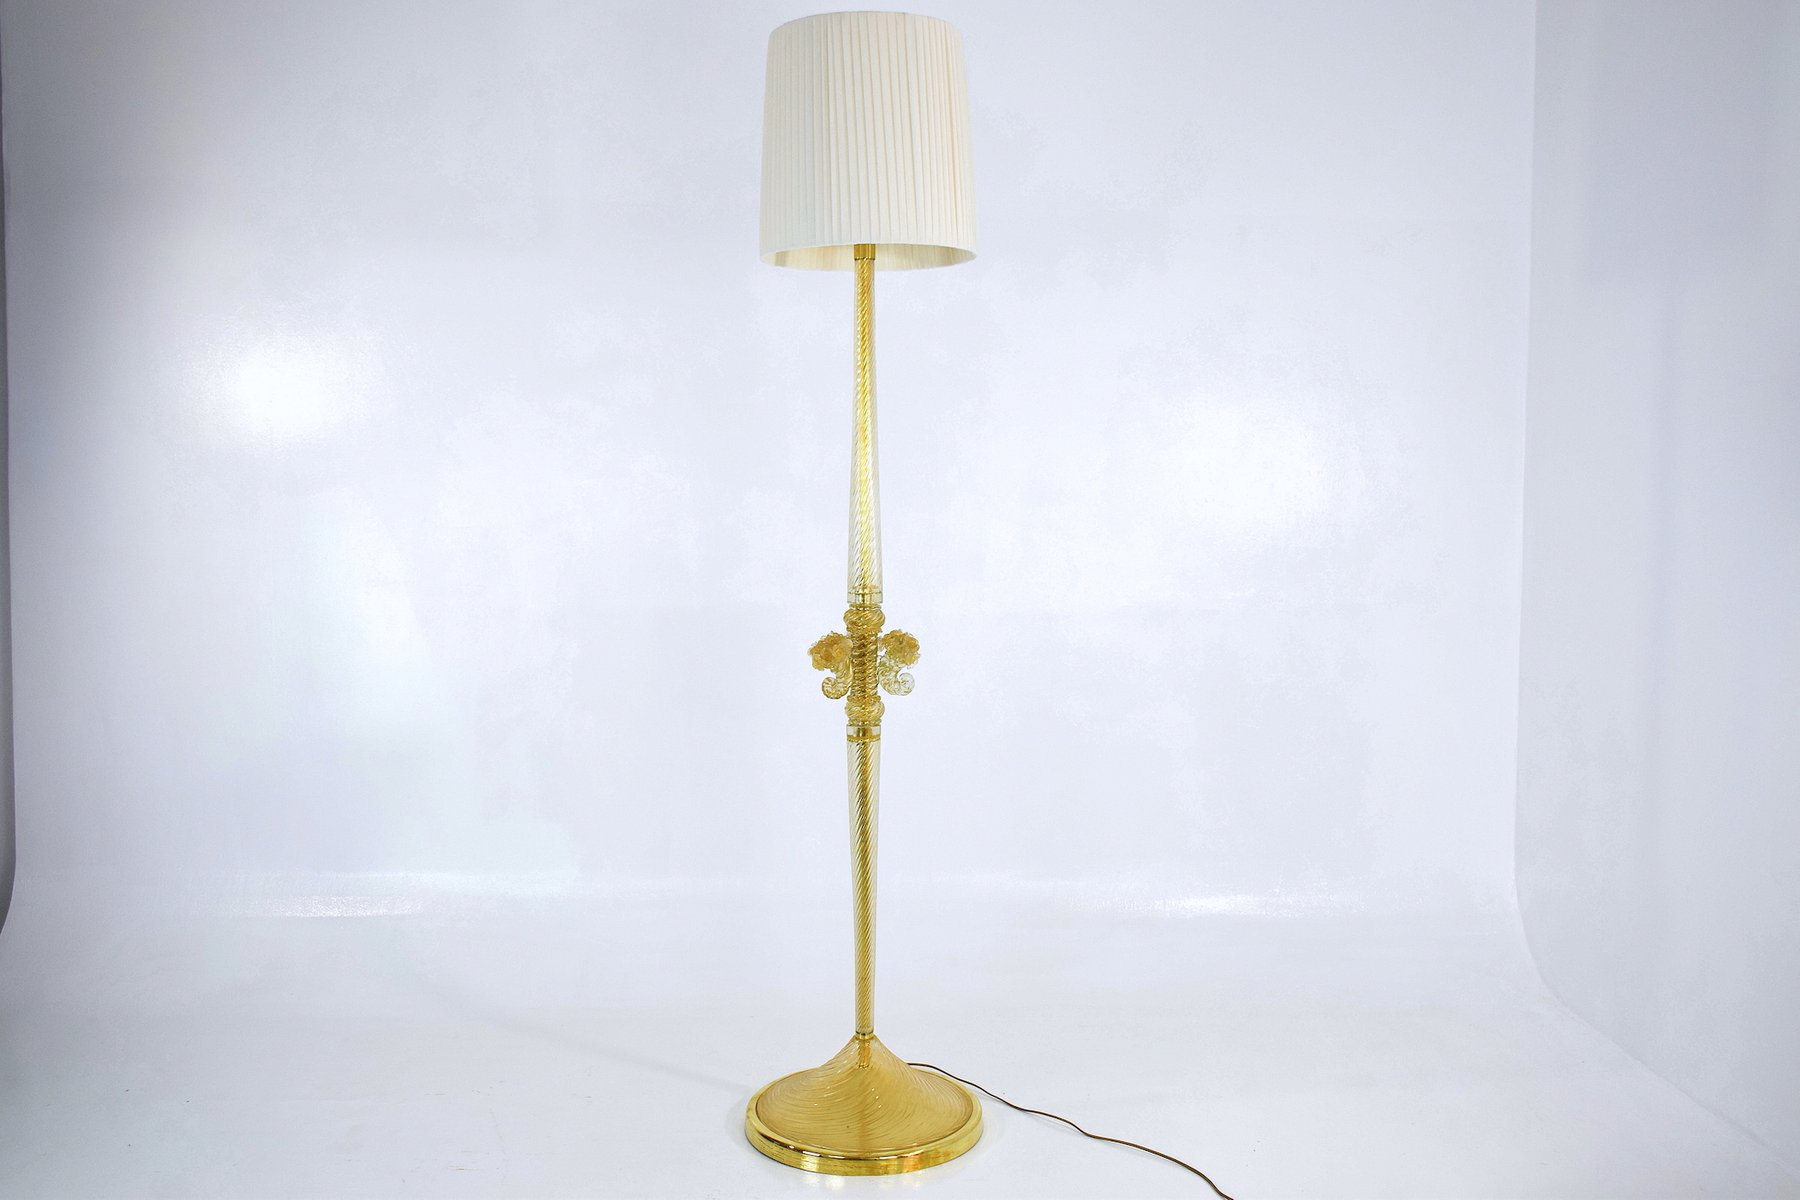 Mid Century Murano Floor Lamp By Ercole Barovier For Toso Rewiring Antique Lamps 1940s